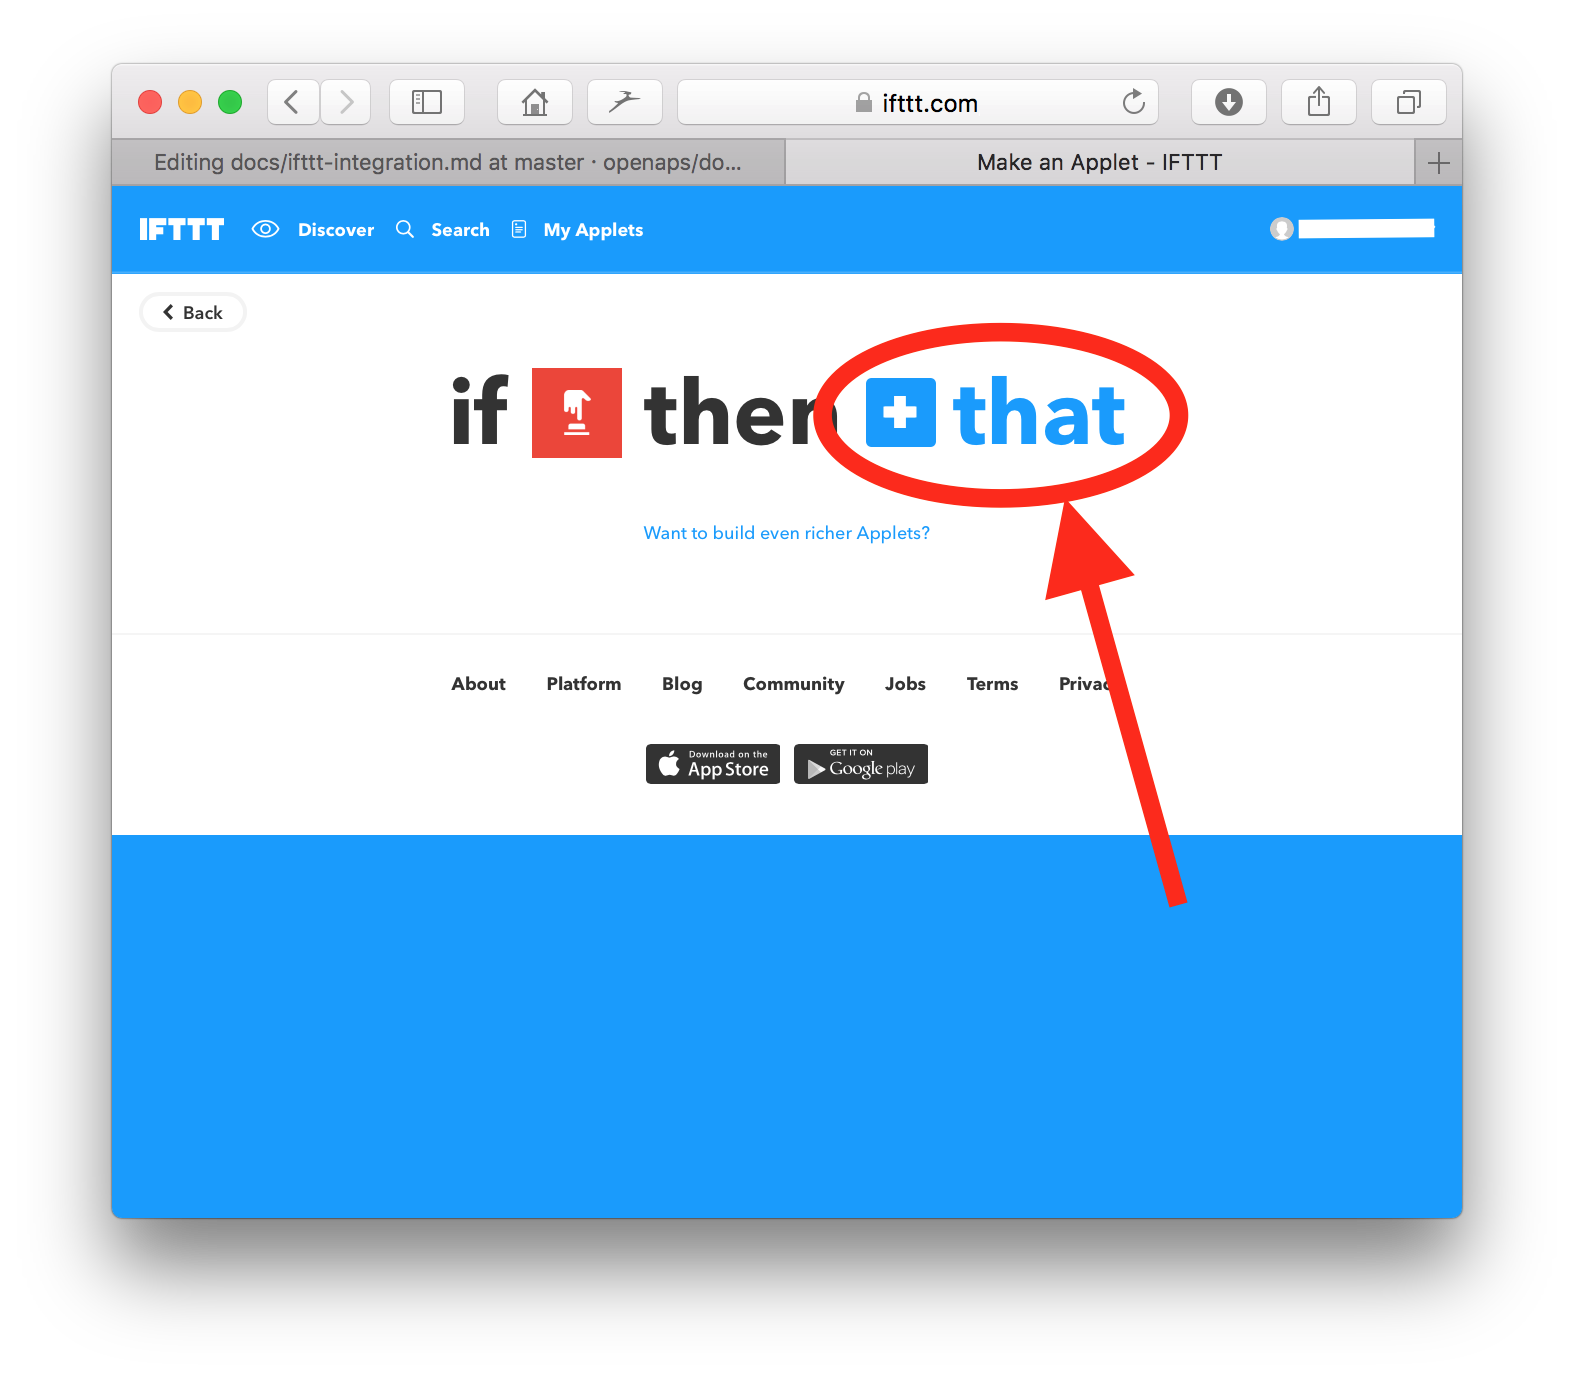 IFTTT Integration — OpenAPS 0 0 0 documentation